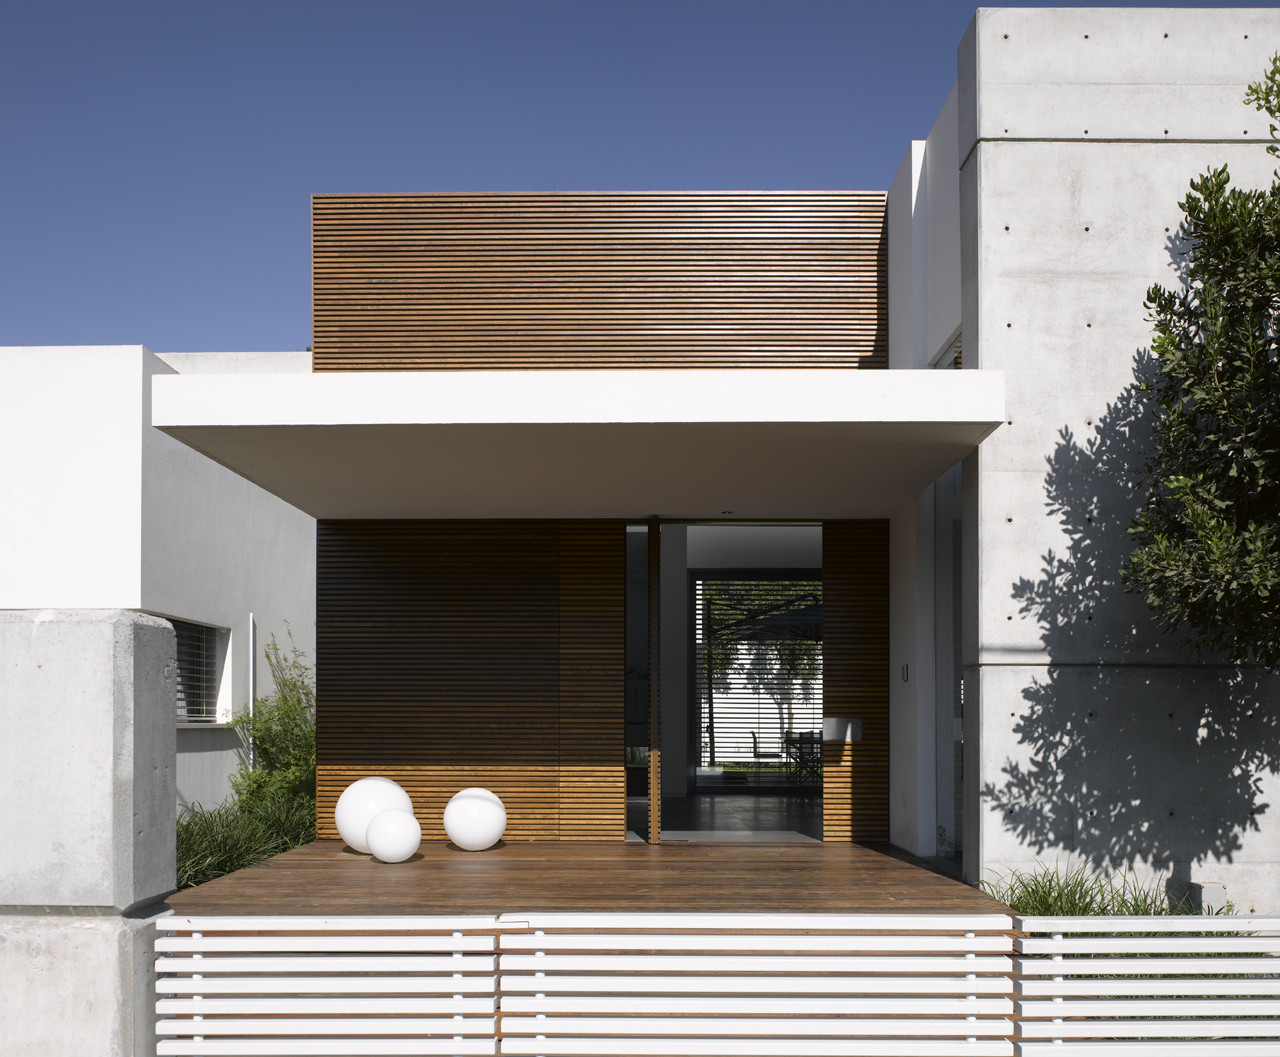 eHouse / Axelrod Architects, © Amit Geron